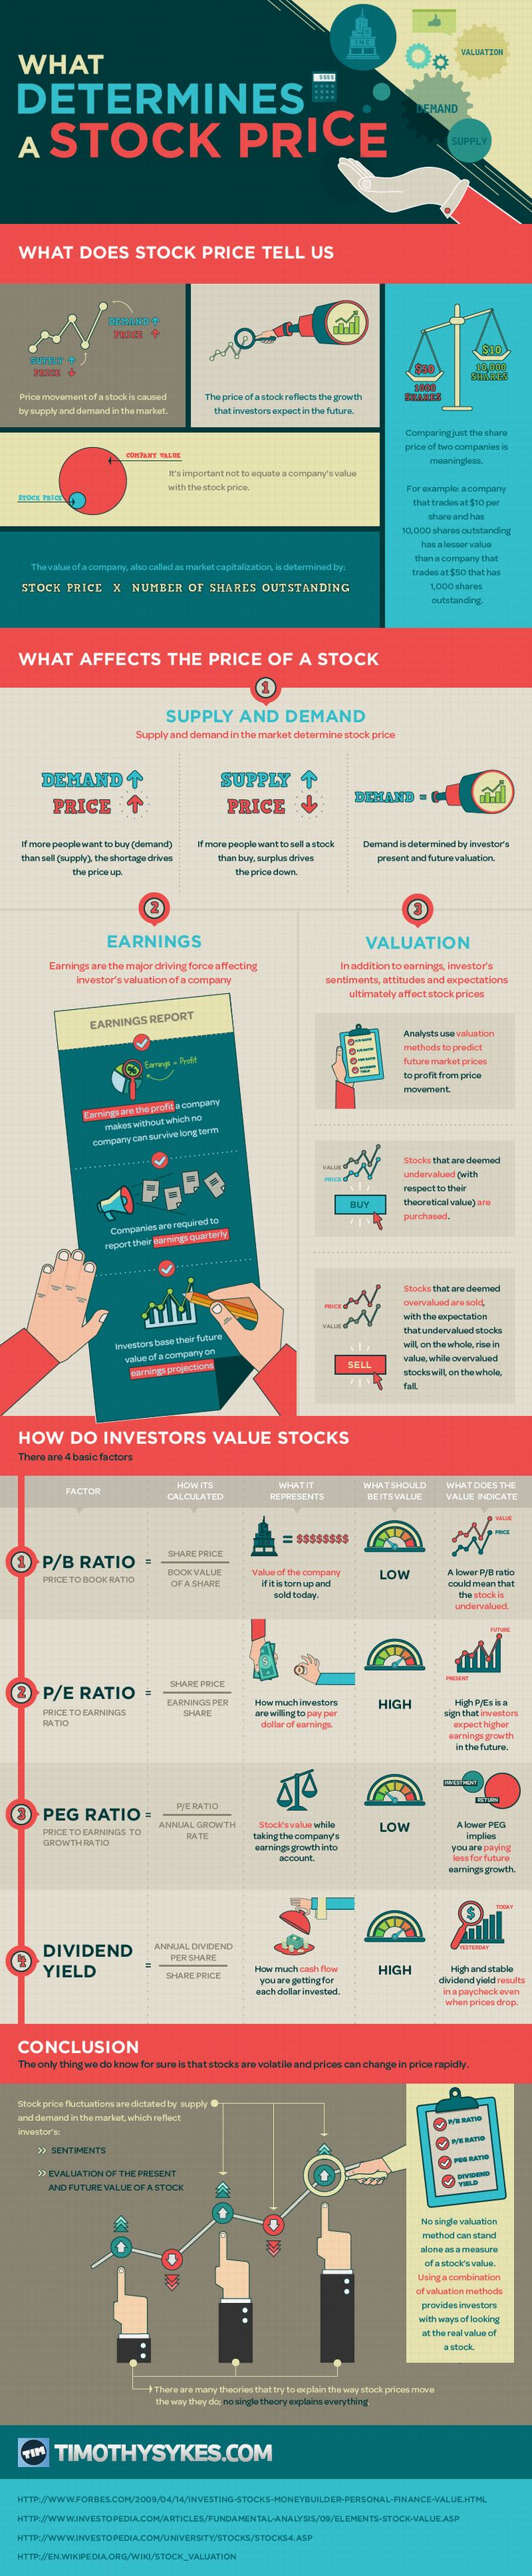 what determines a stock price